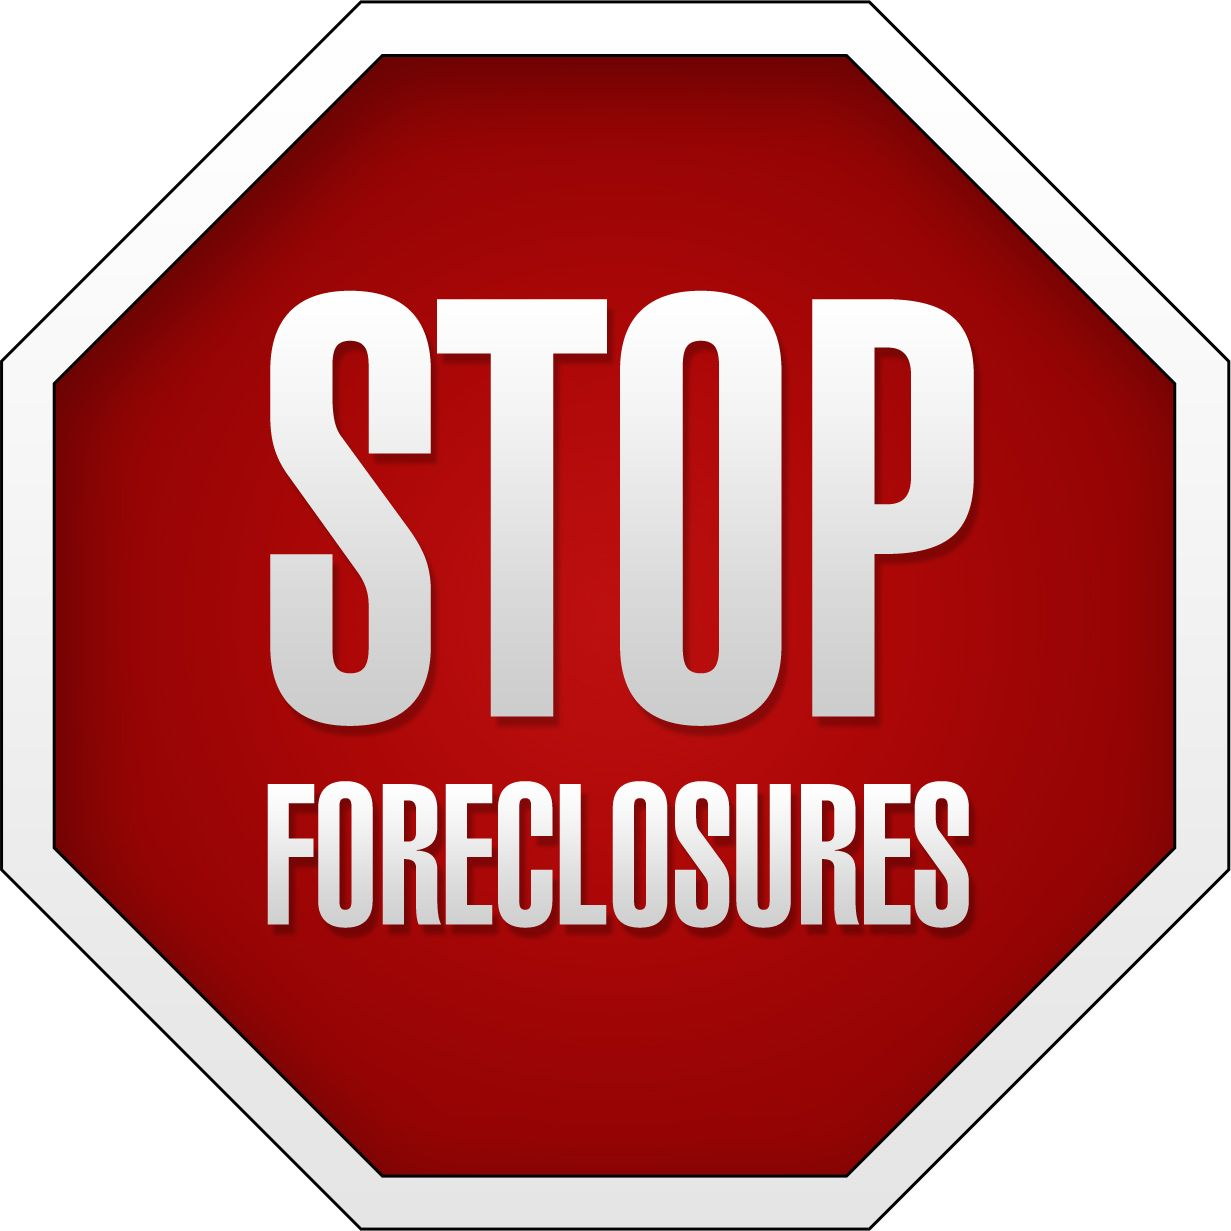 emergency bankruptcy filing to stop foreclosure in virgnia beach bankruptcy lawyers virginia. Black Bedroom Furniture Sets. Home Design Ideas